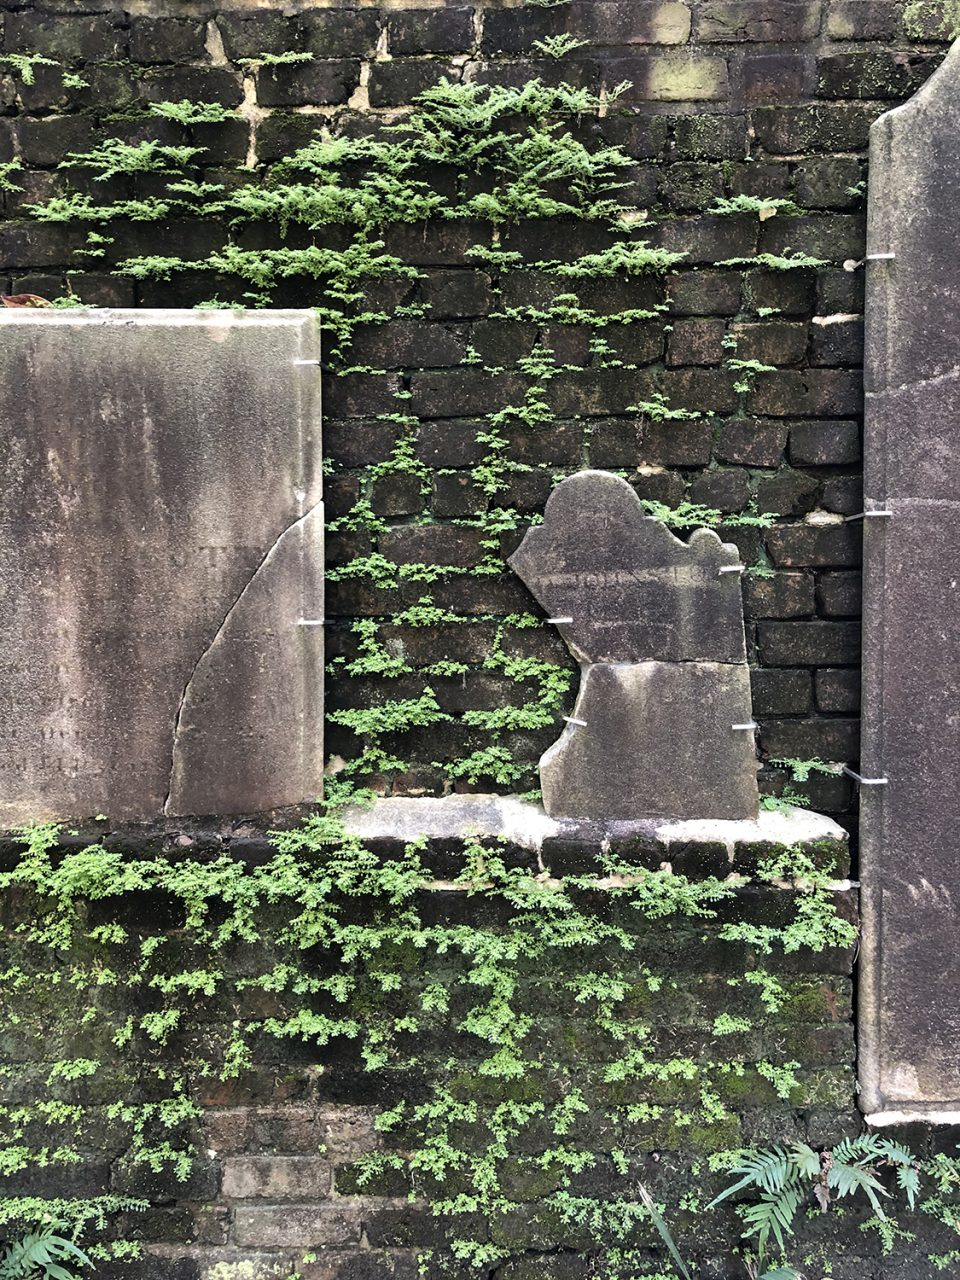 Old gravestones and new growth: dislocated headstones are mounted on a brick wall that's sprouting greenery in Savannah's Colonial Cemetery.